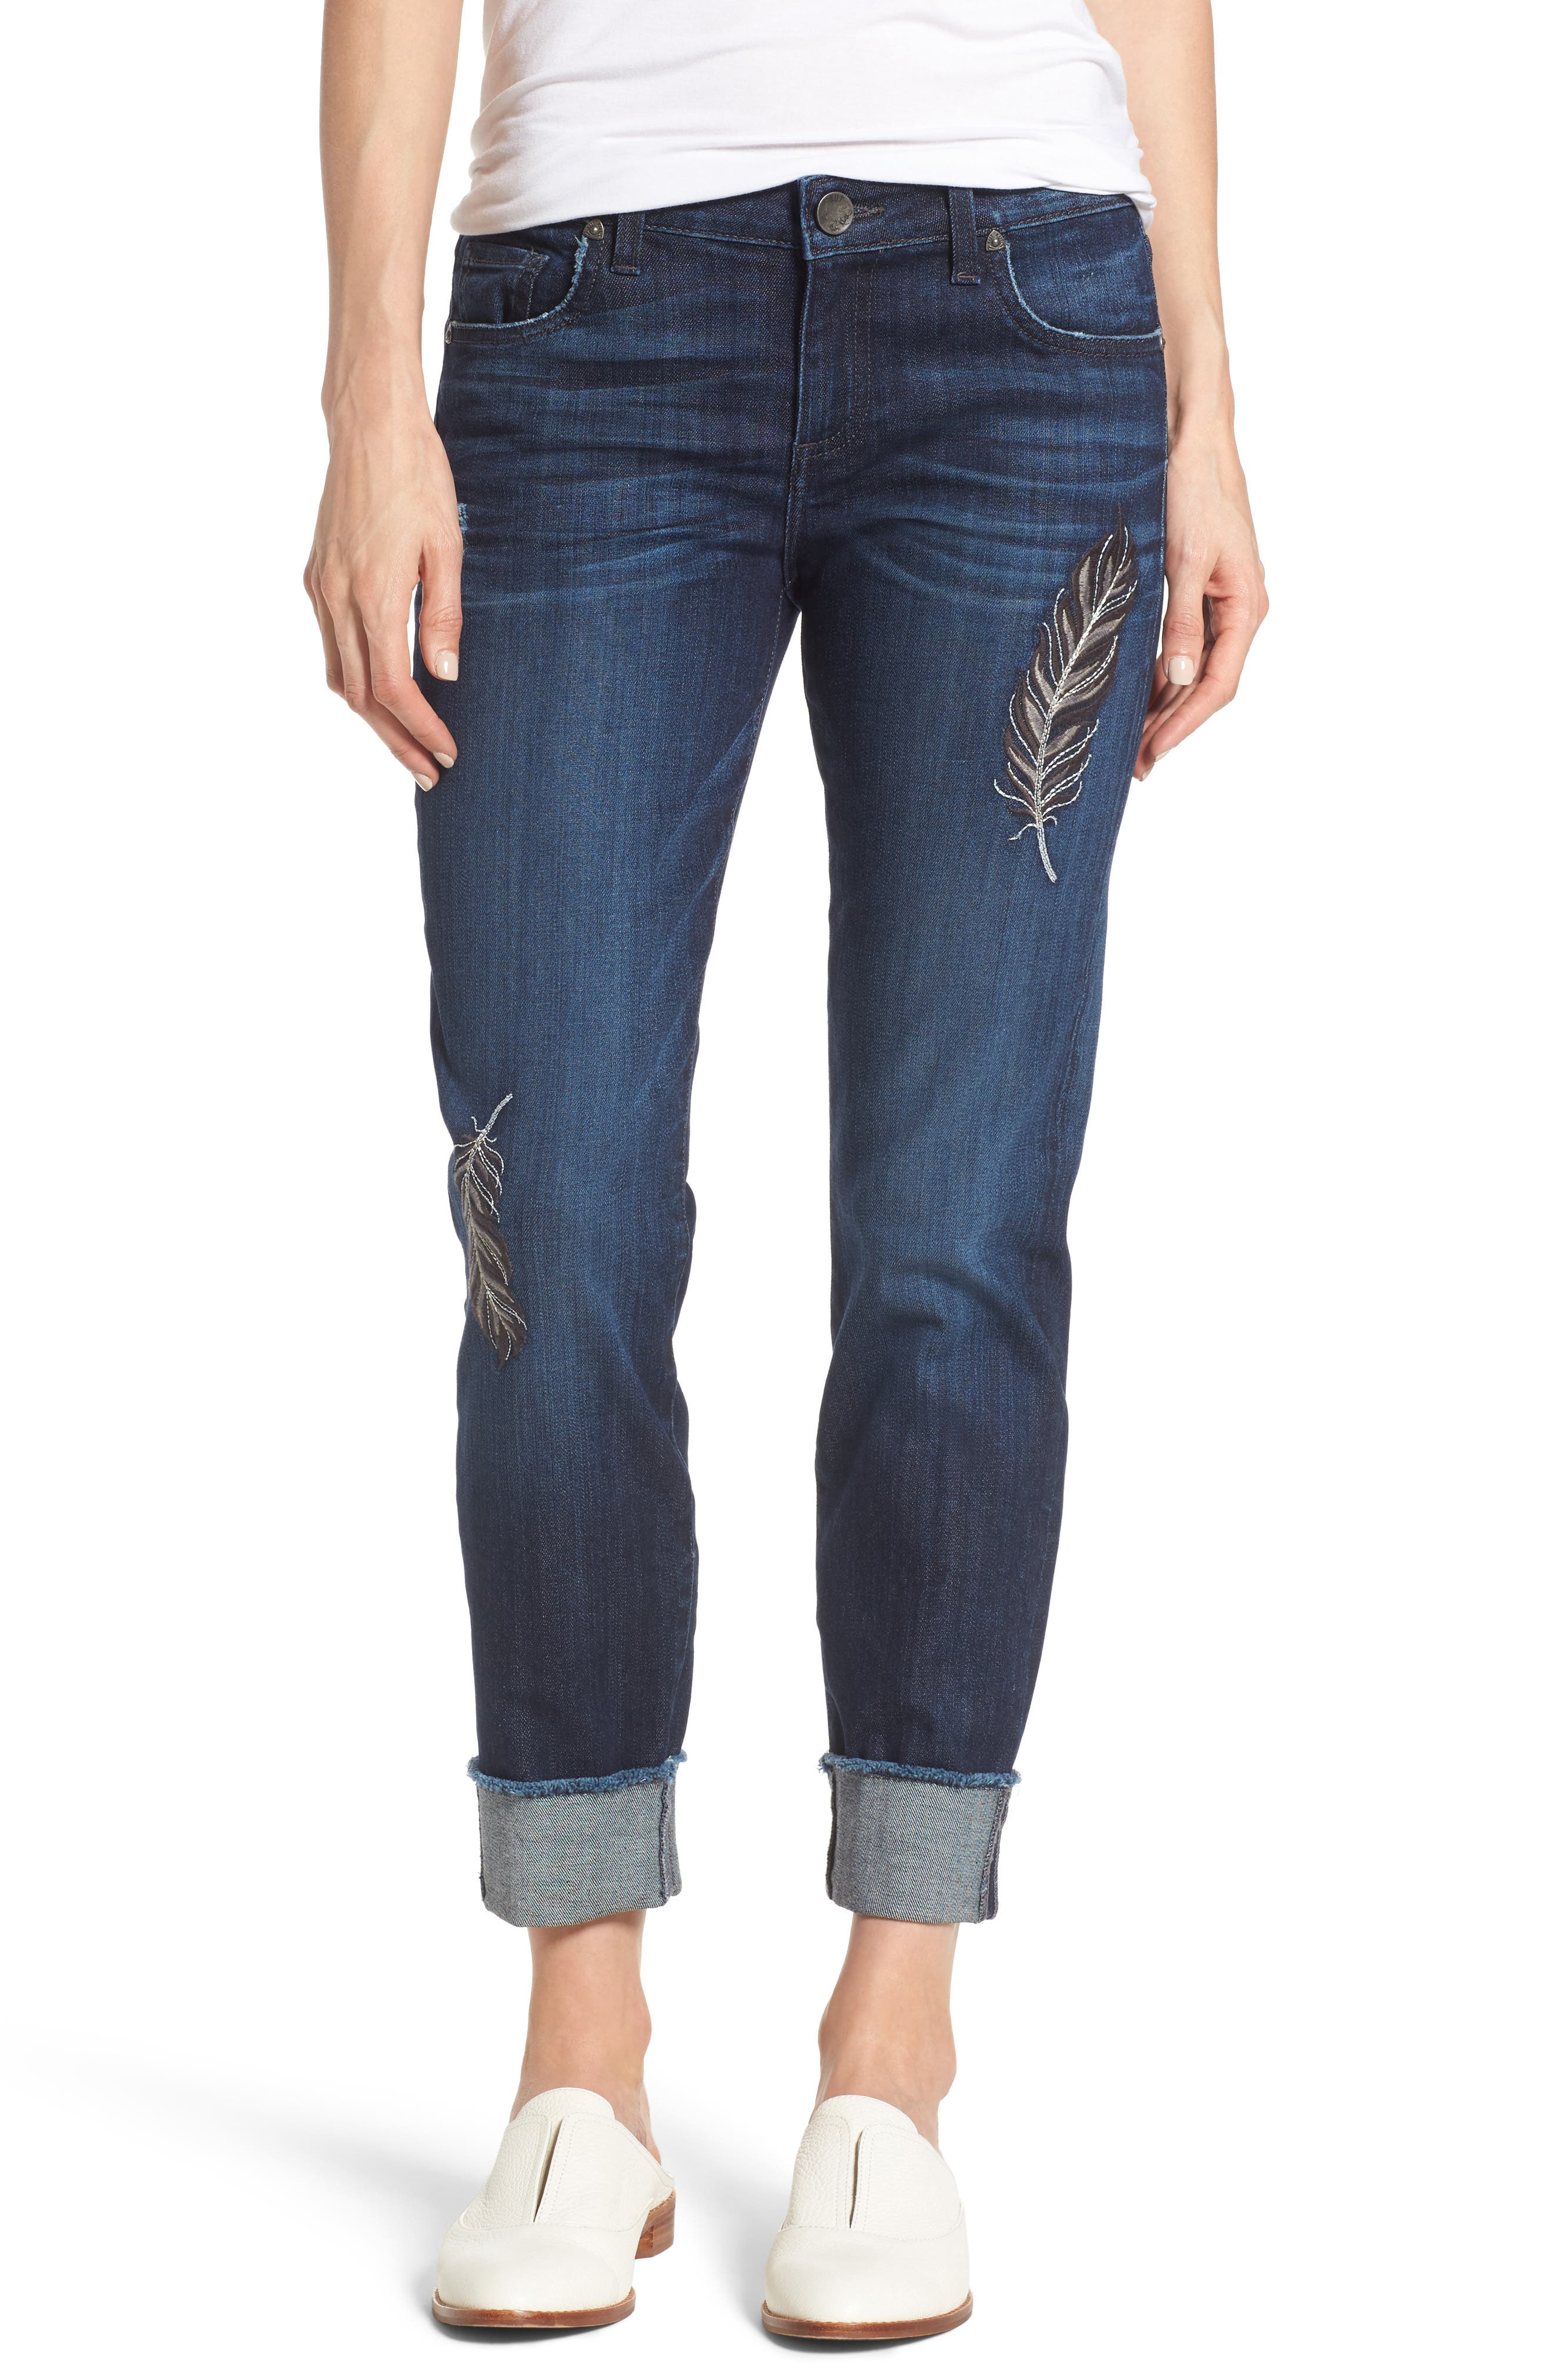 Alternate Image 1 Selected - KUT from the Kloth Amy Cuffed Crop Jeans (Overt)